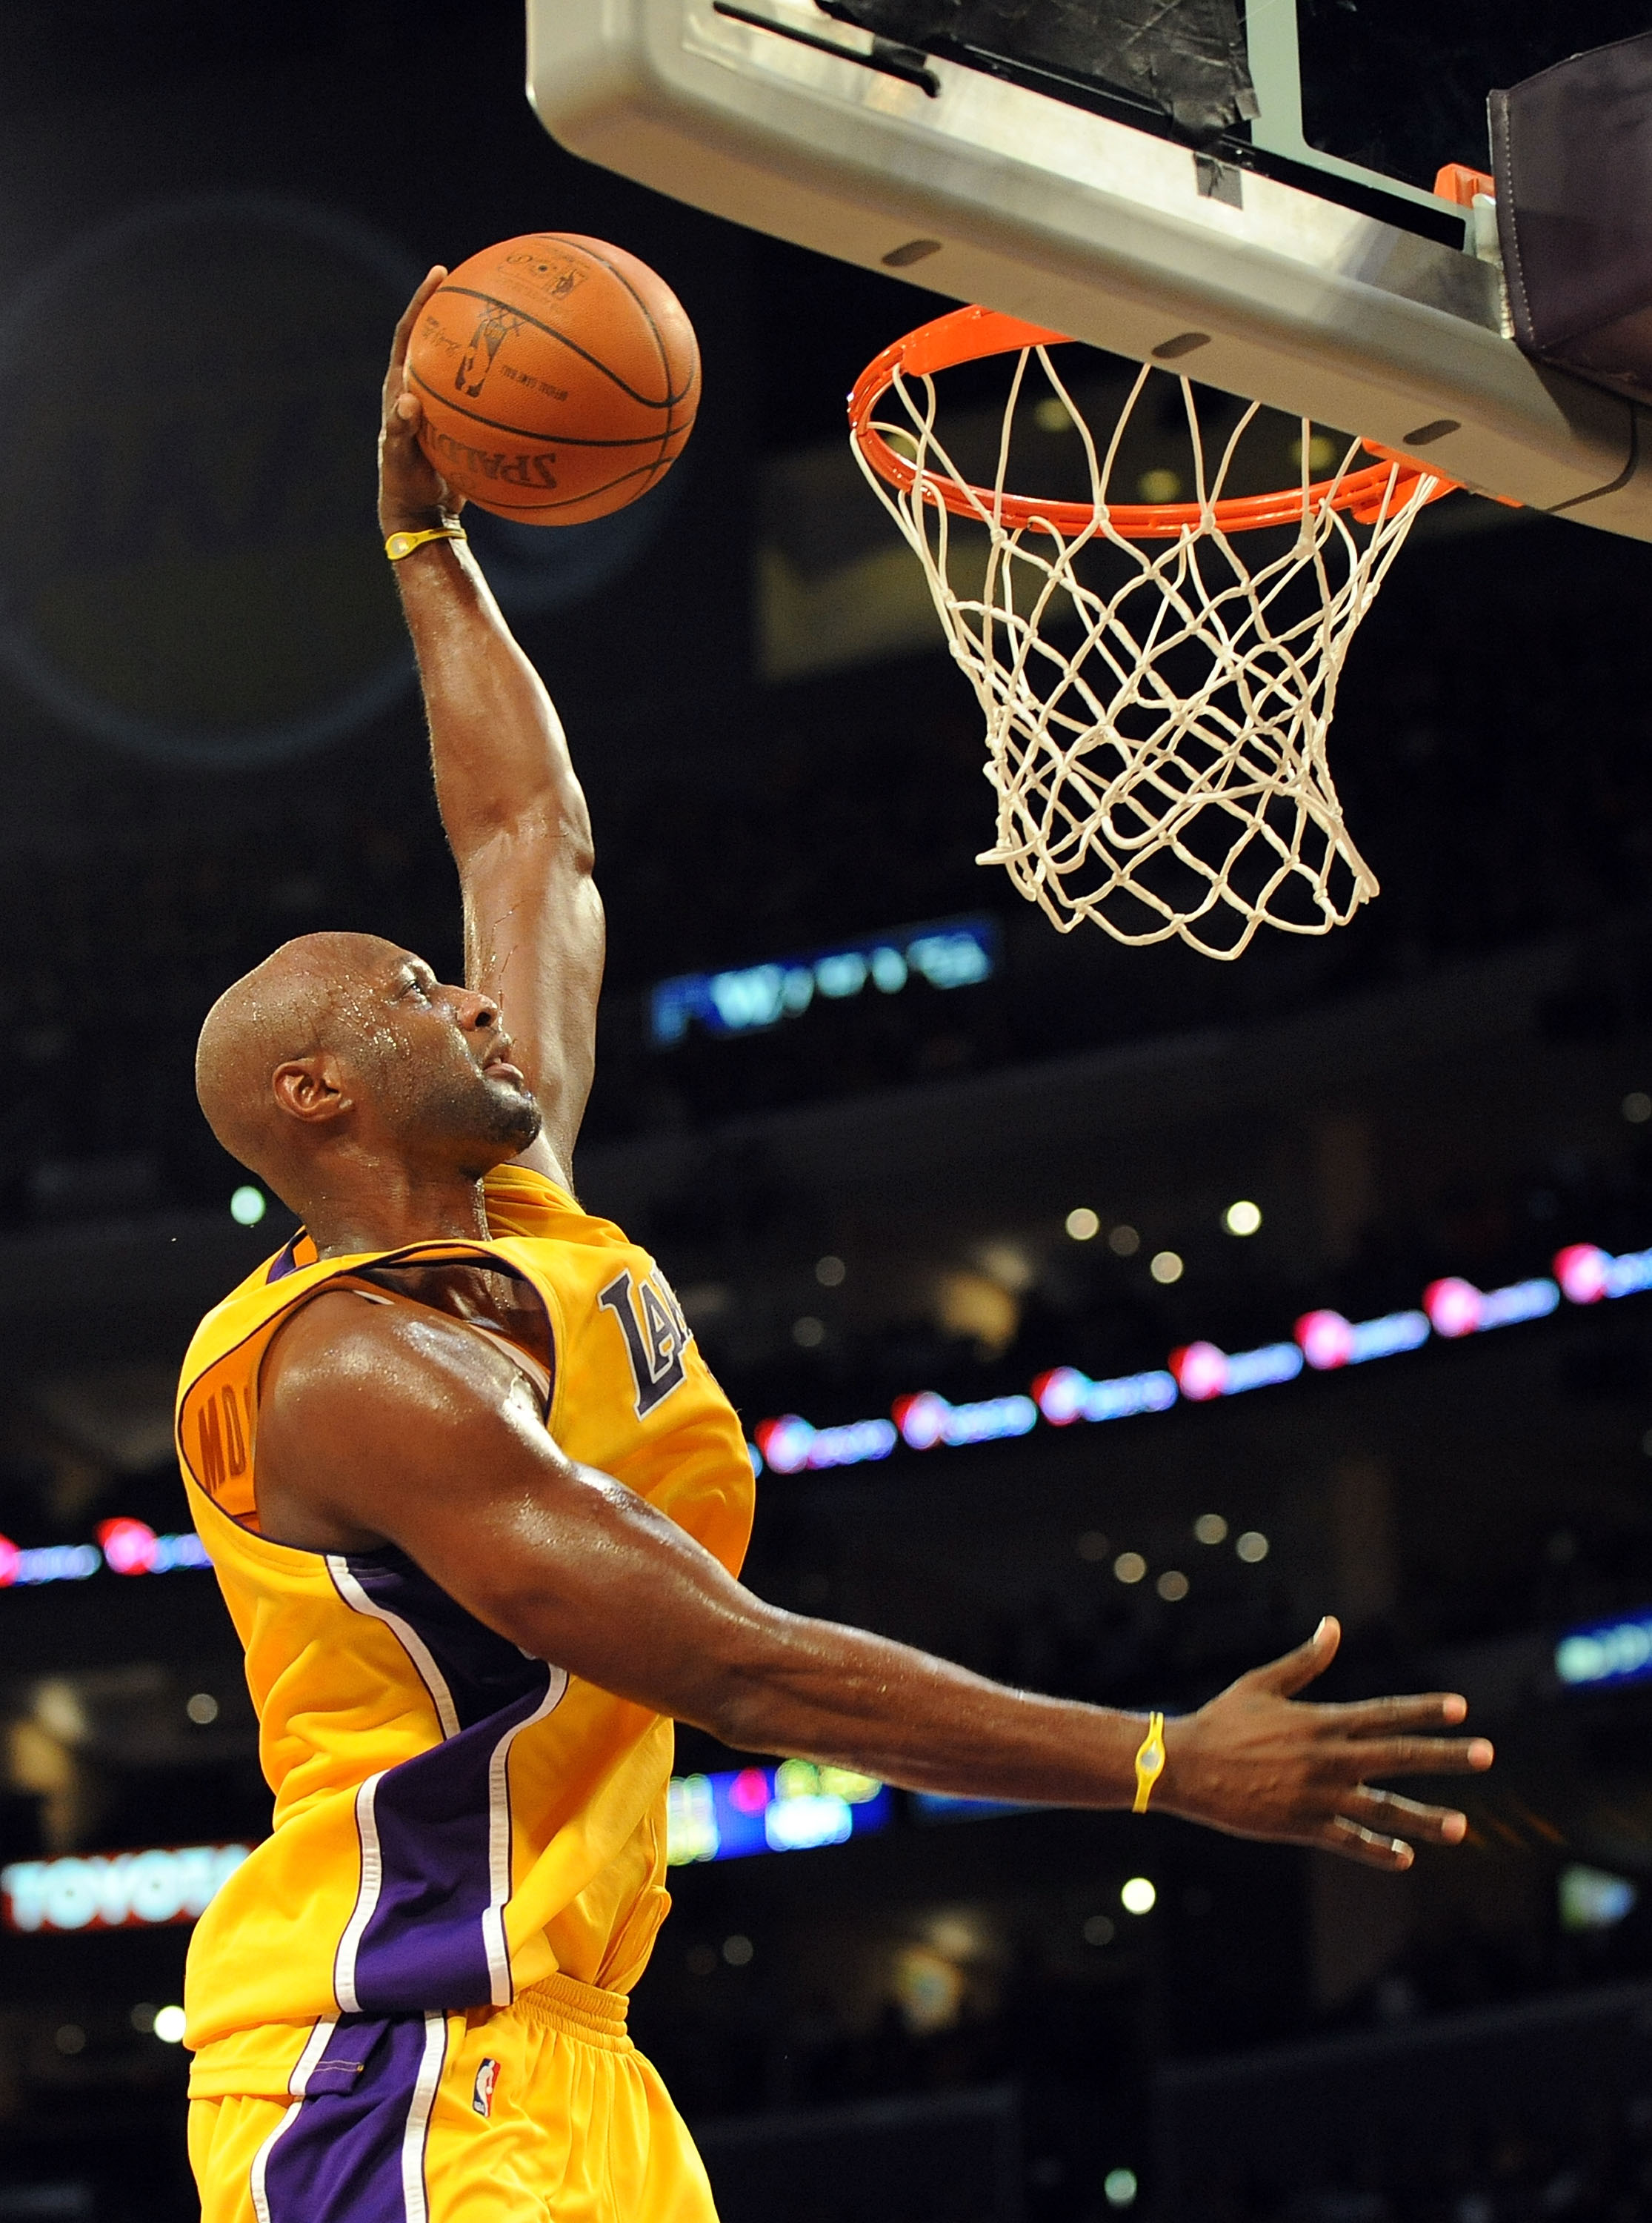 Lamar Odom of the Lakers.